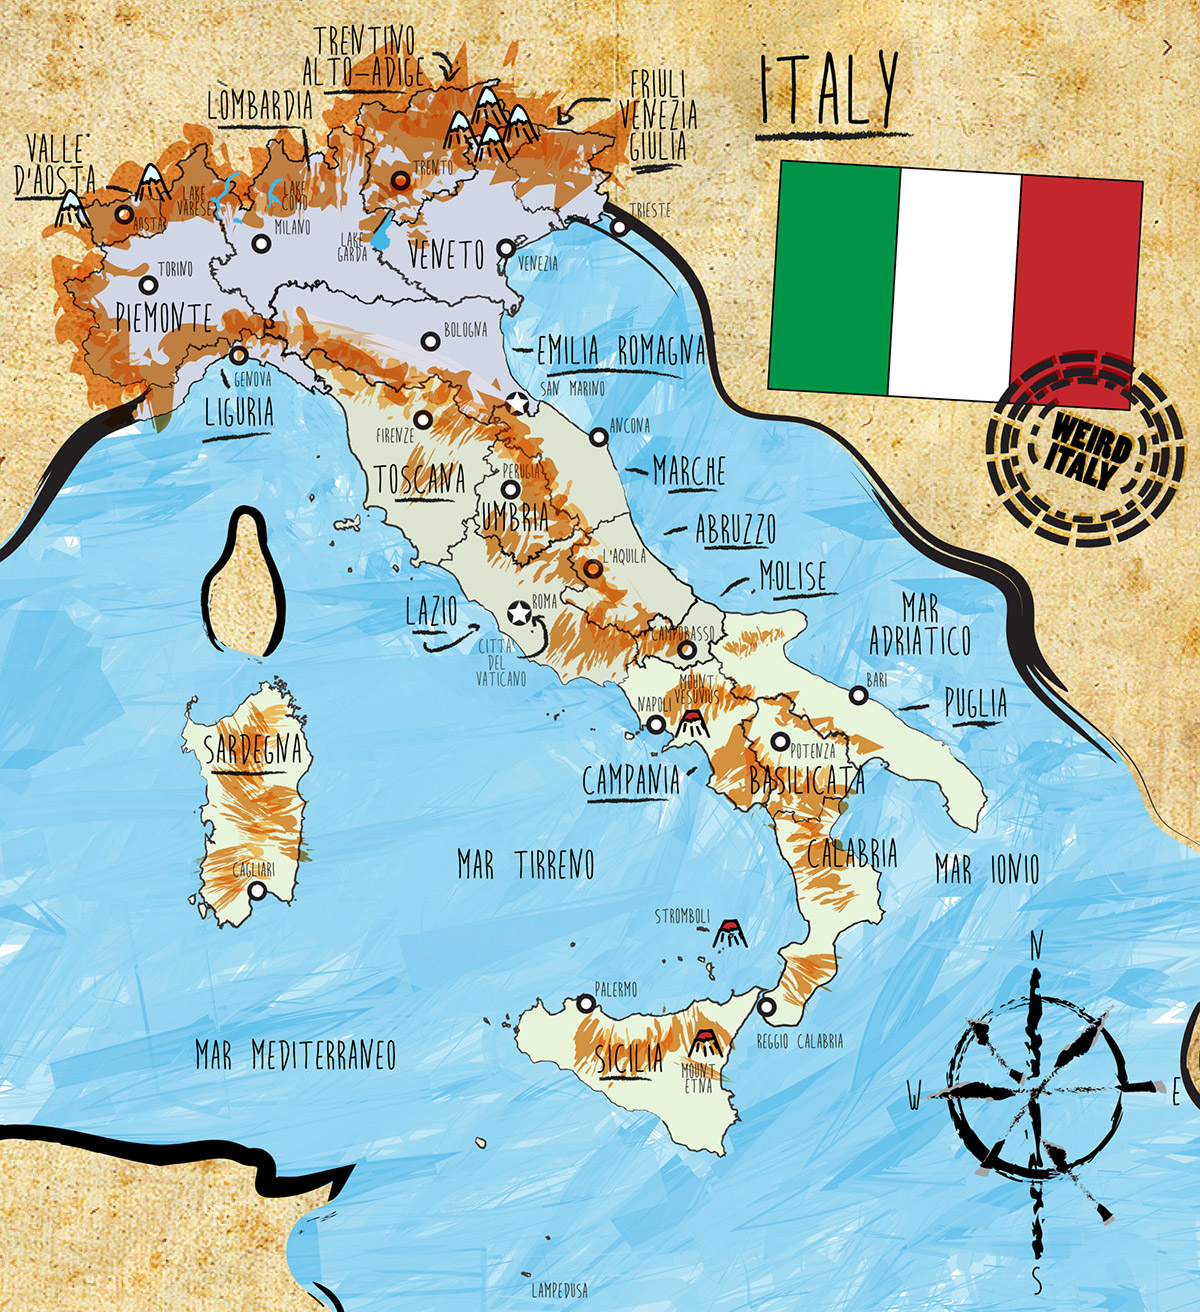 Italy Country Map And Statistics Weird Italy - Italy map